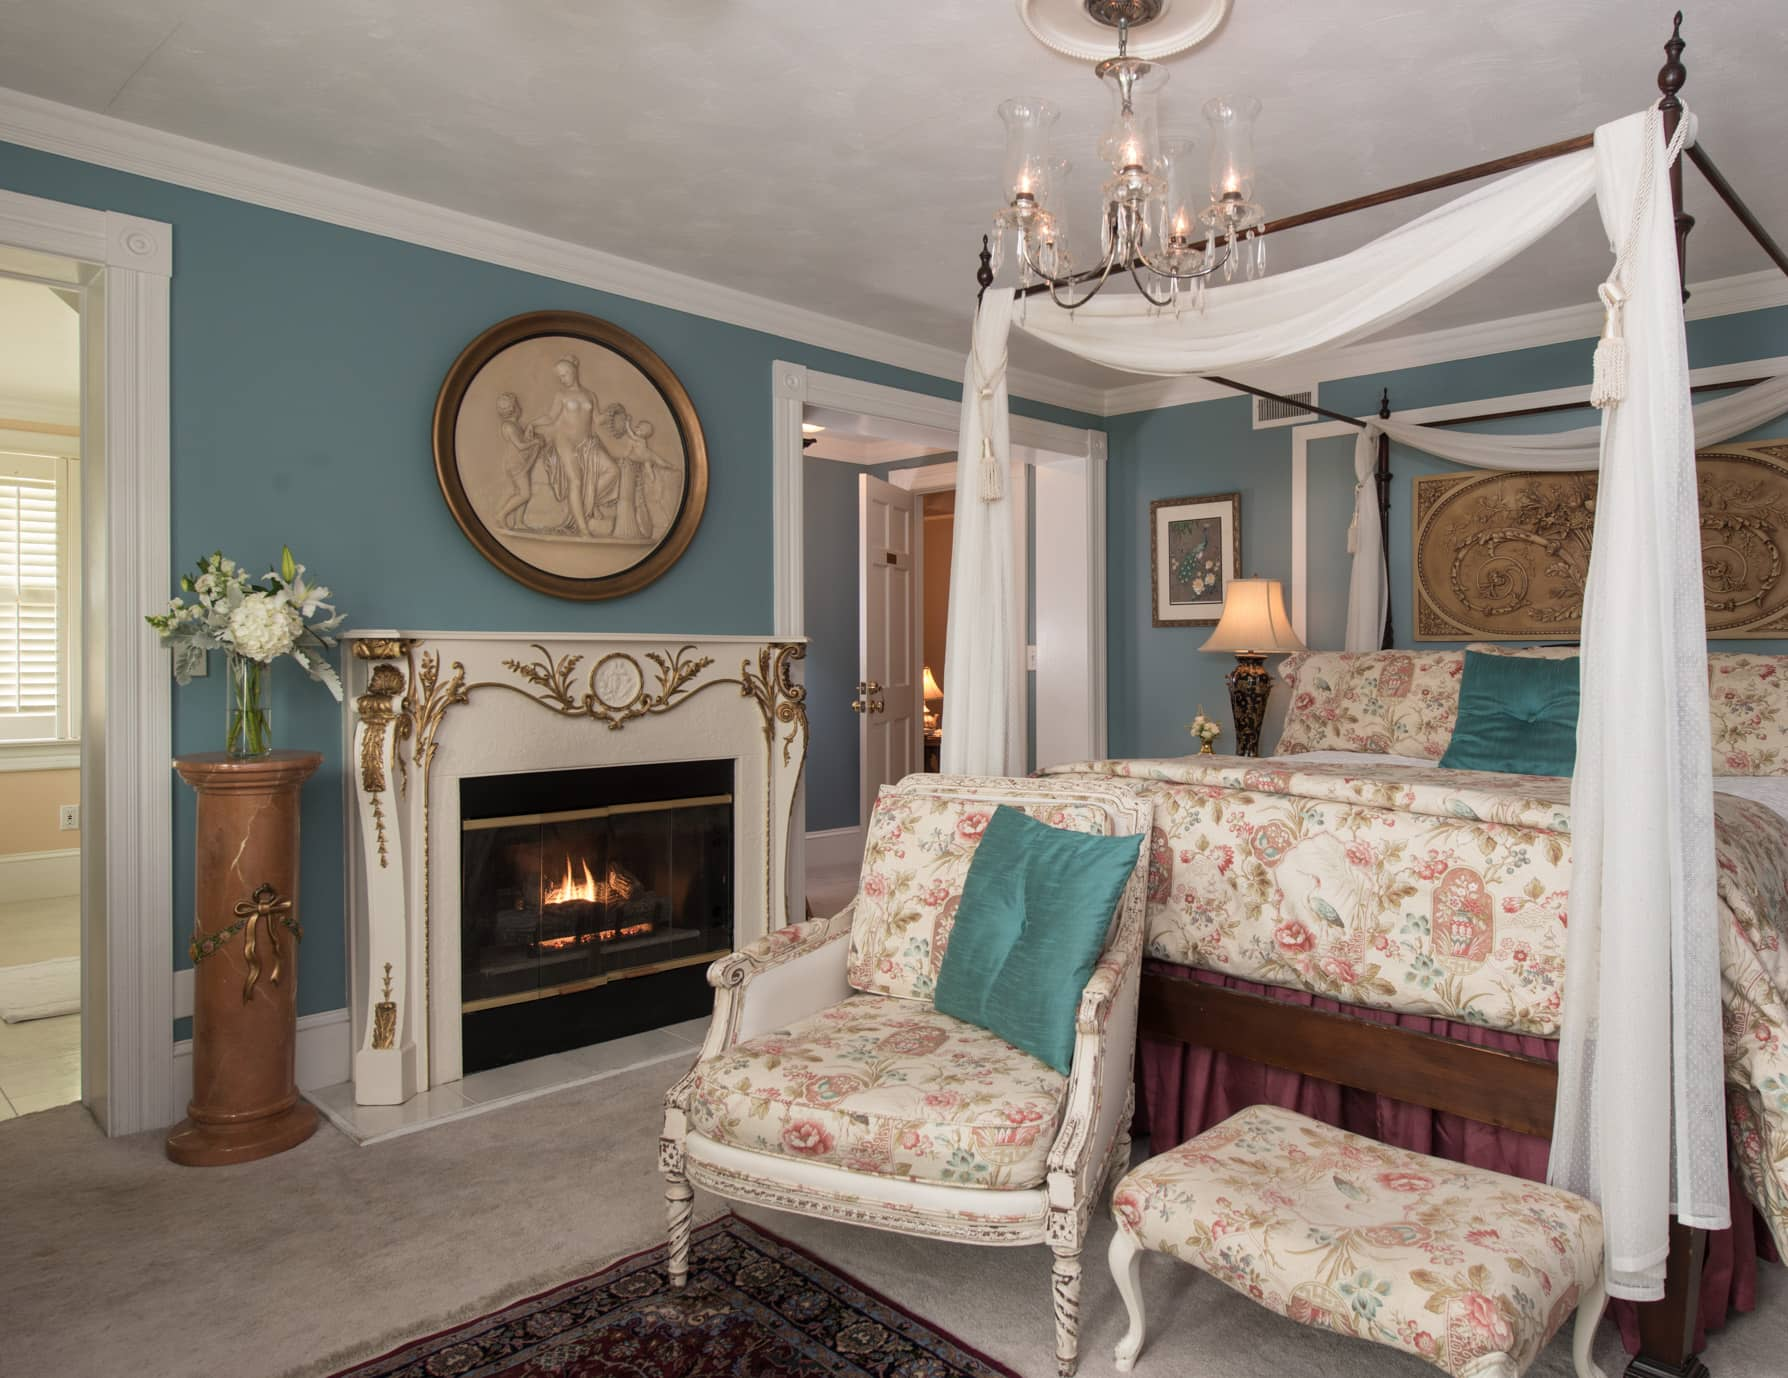 Roanoke Island Inn Fireplace and Queen Four Poster Bed